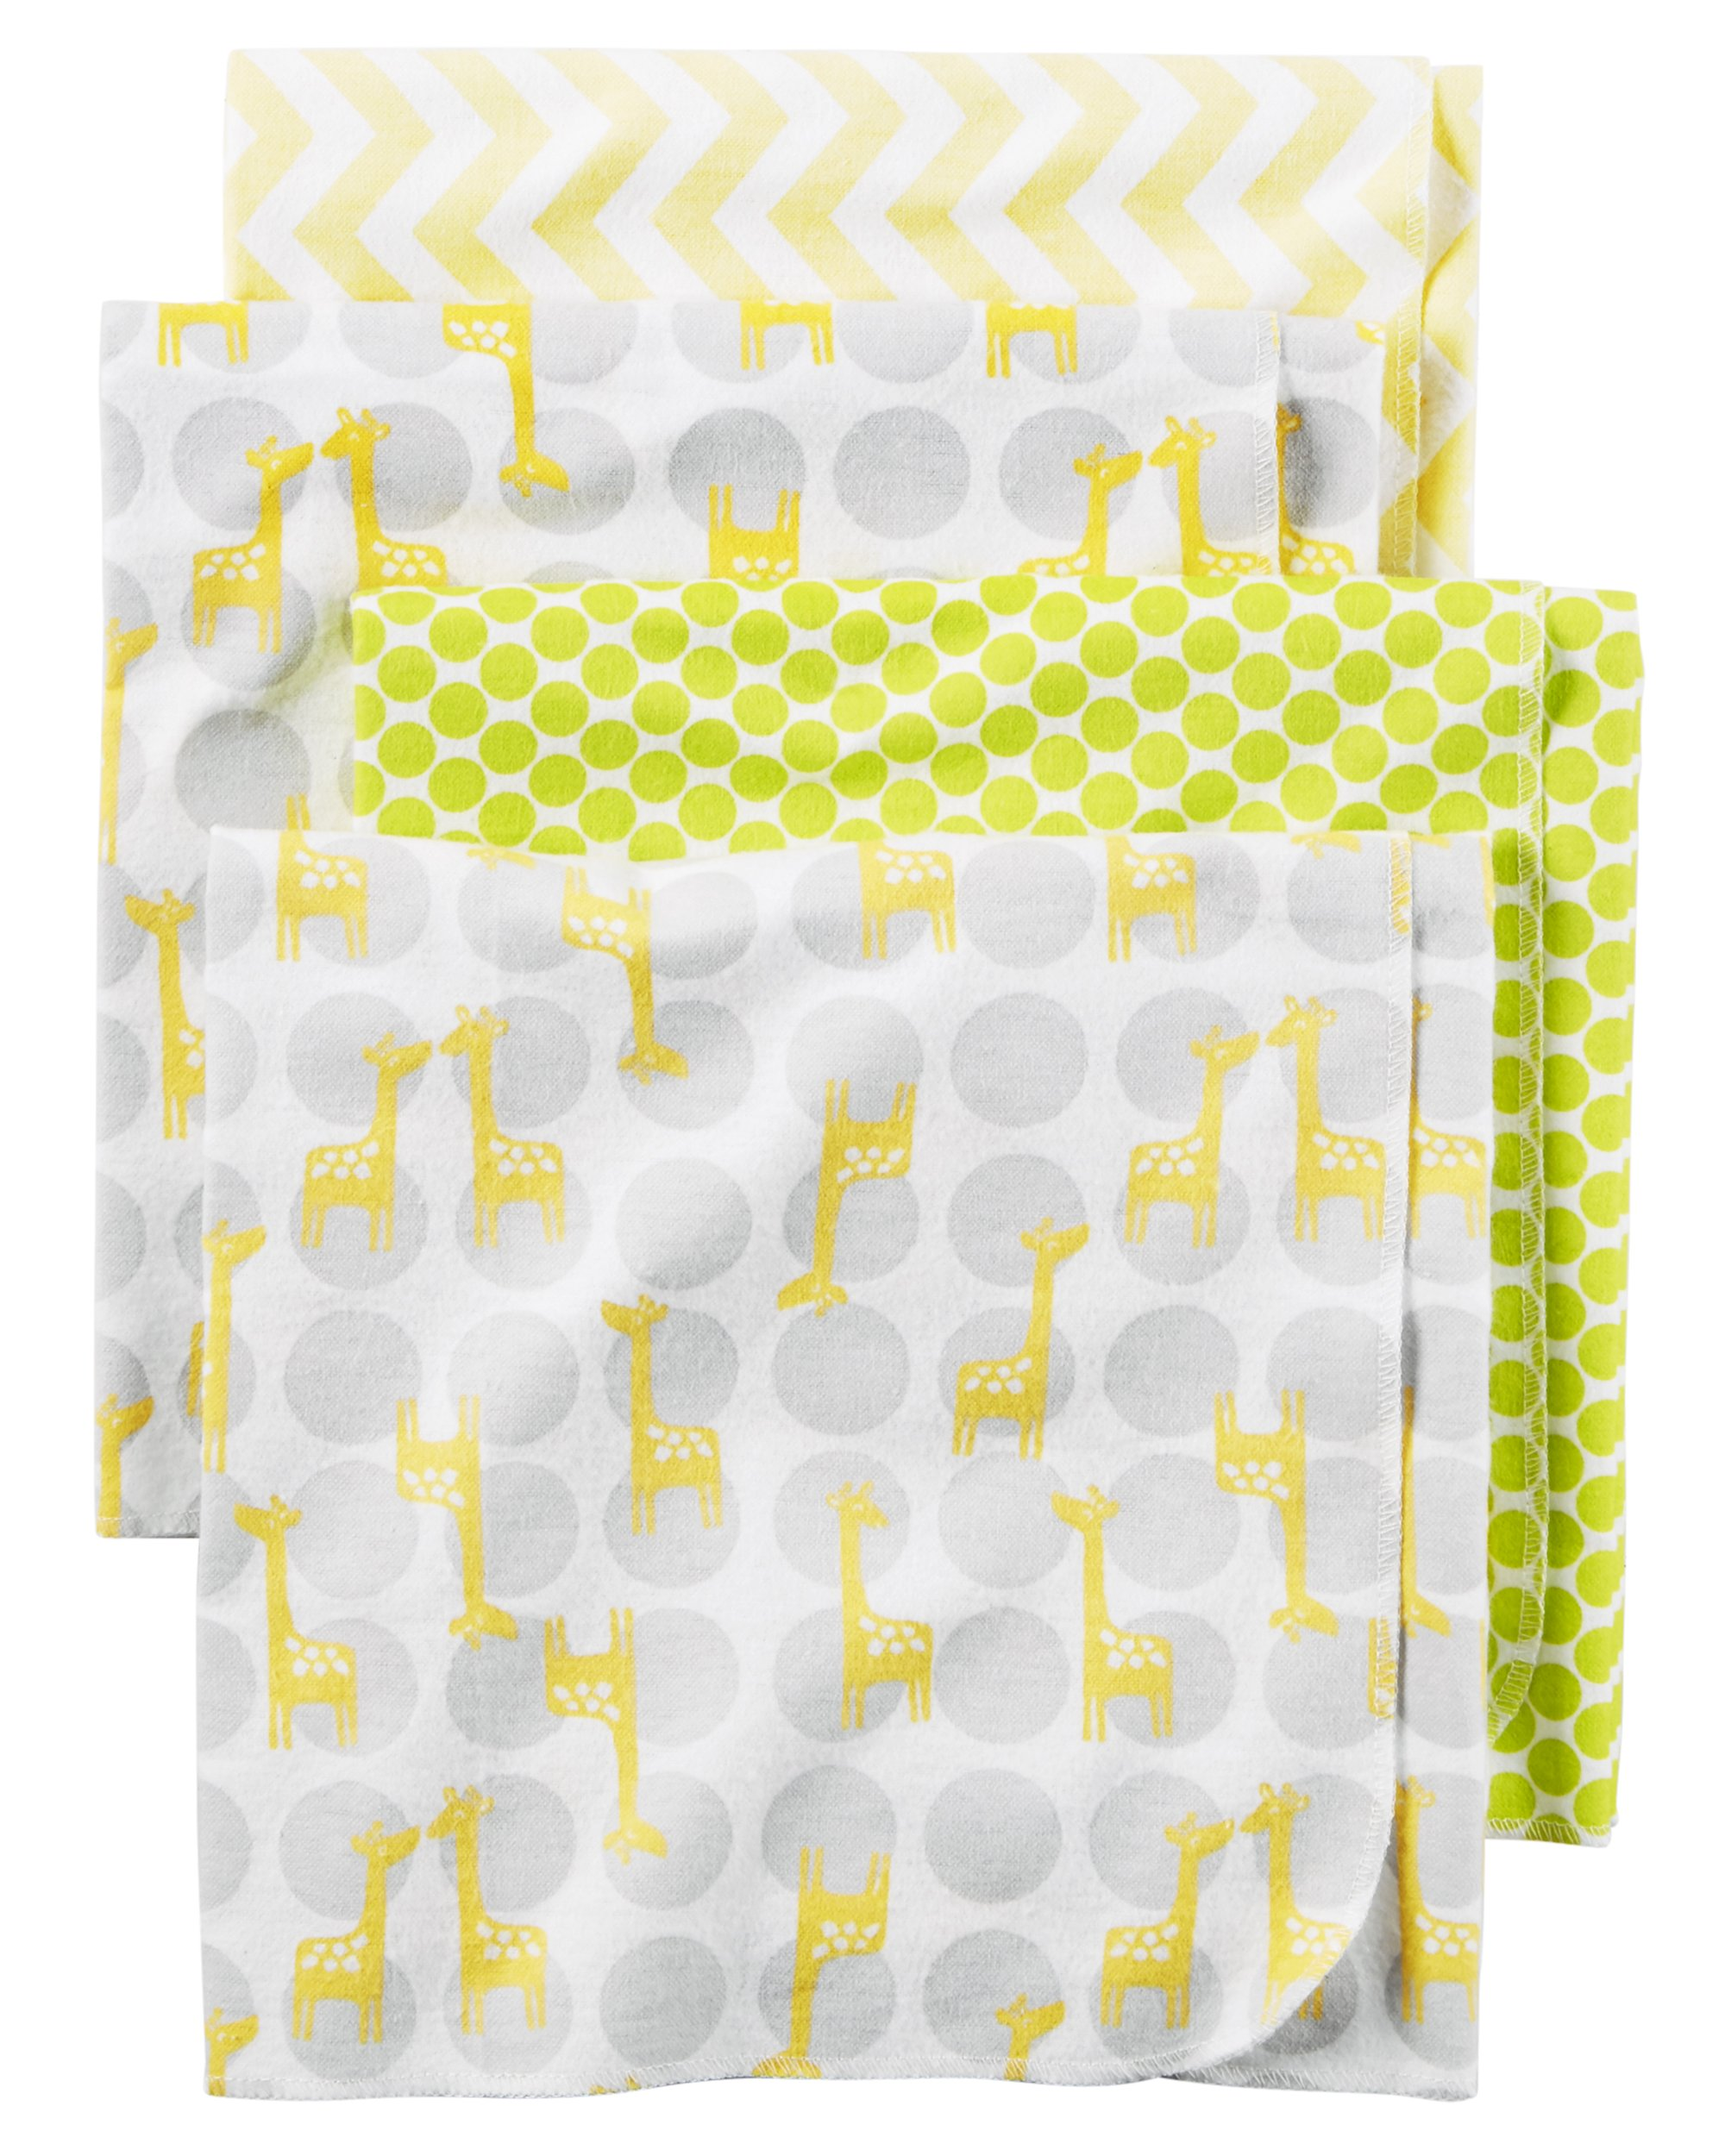 Carter's Baby One Size 4-Pack Flannel Receiving Blankets, Yellow Giraffe by Carter's